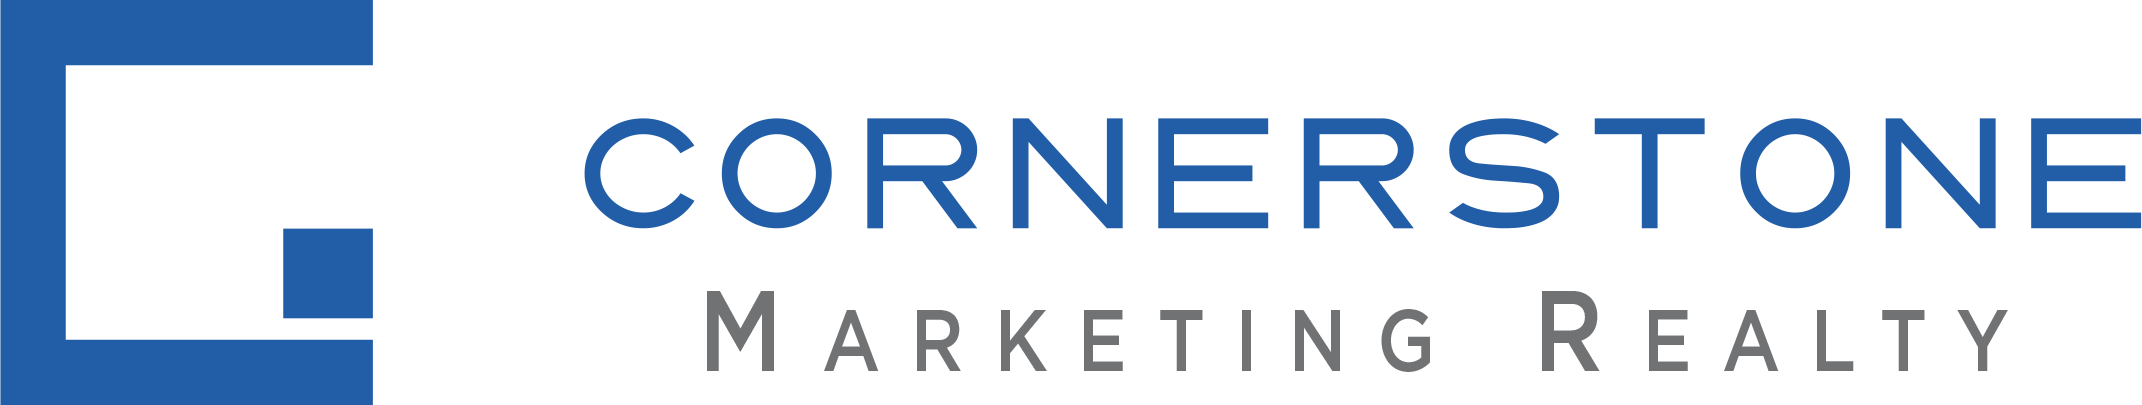 Cornerstone Marketing Realty Inc.